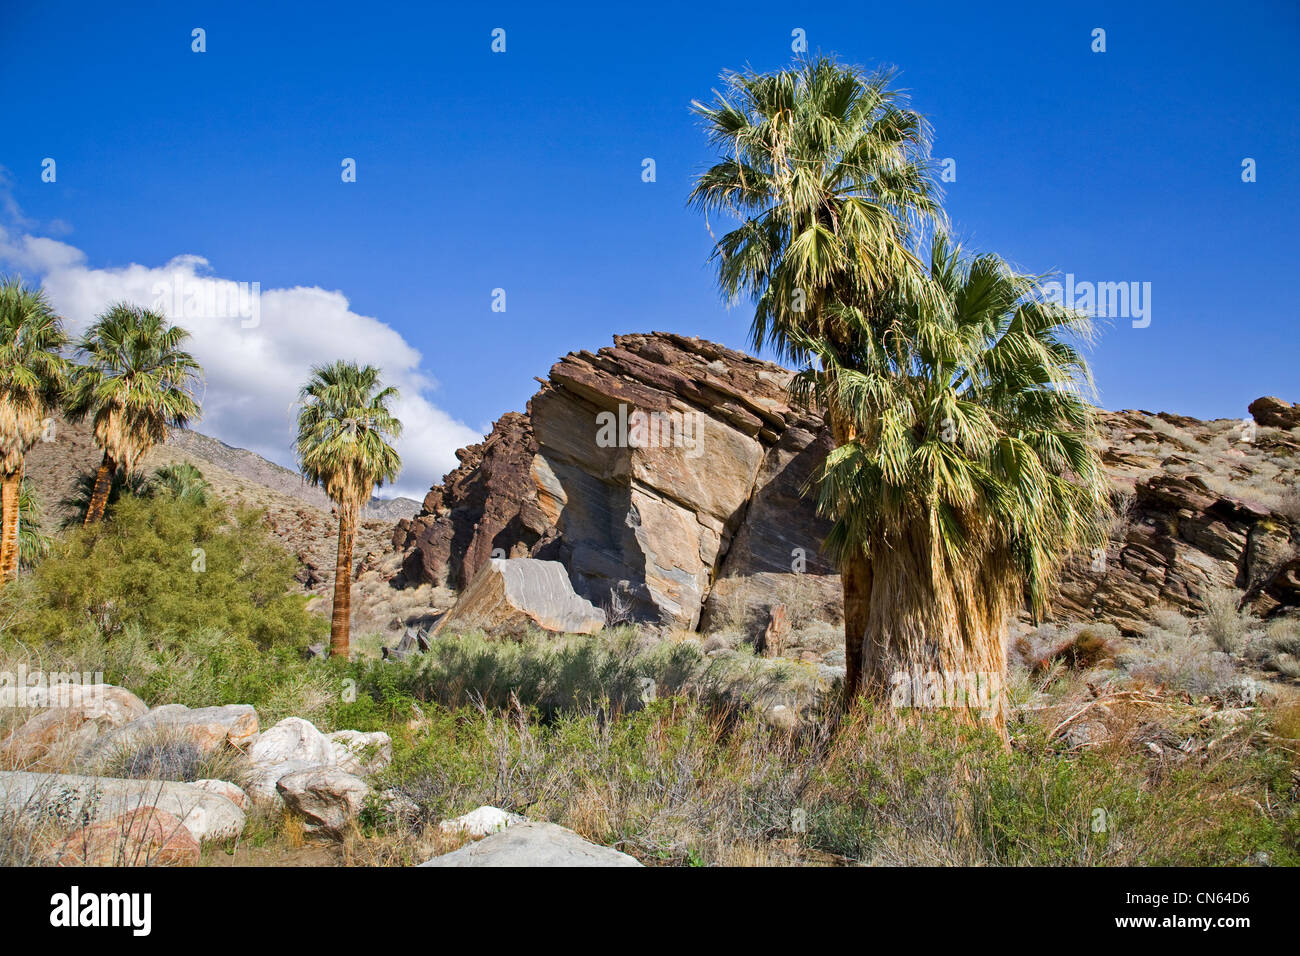 Murry Canyon, Indian Canyons, near Palm Springs, California - Stock Image